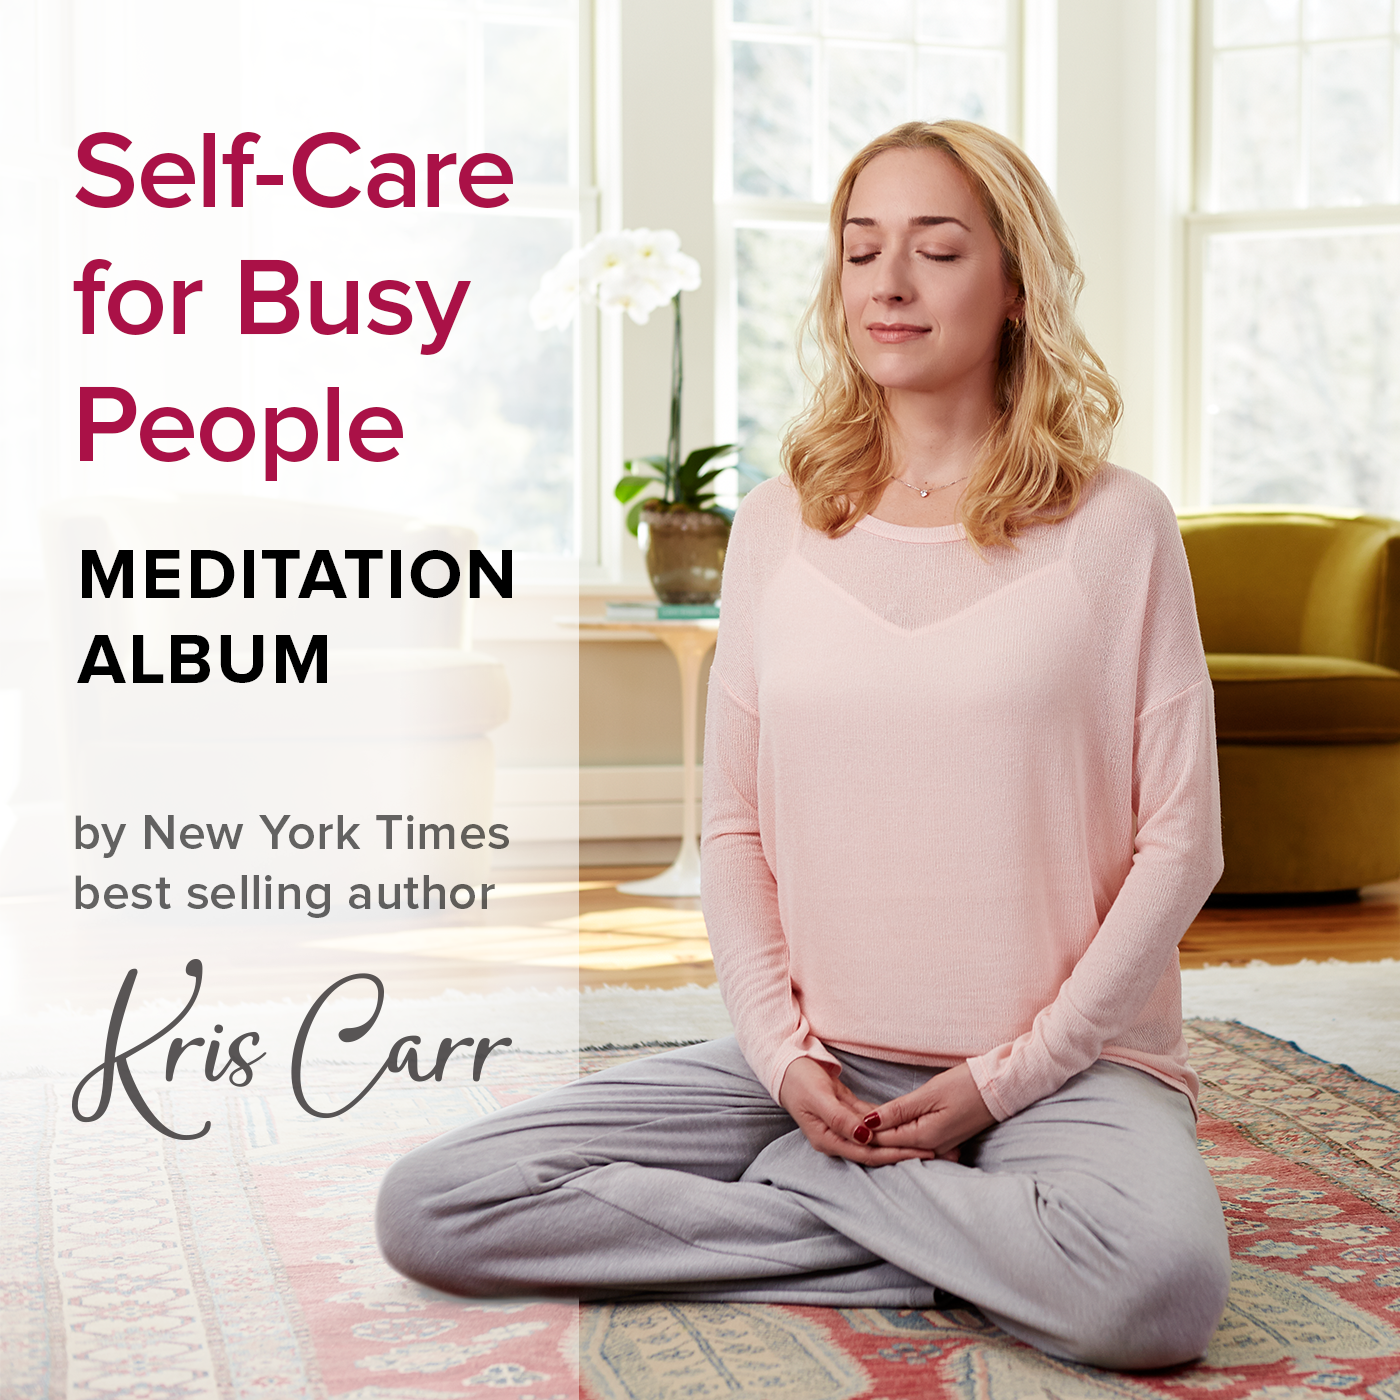 Self-Care for Busy People Album